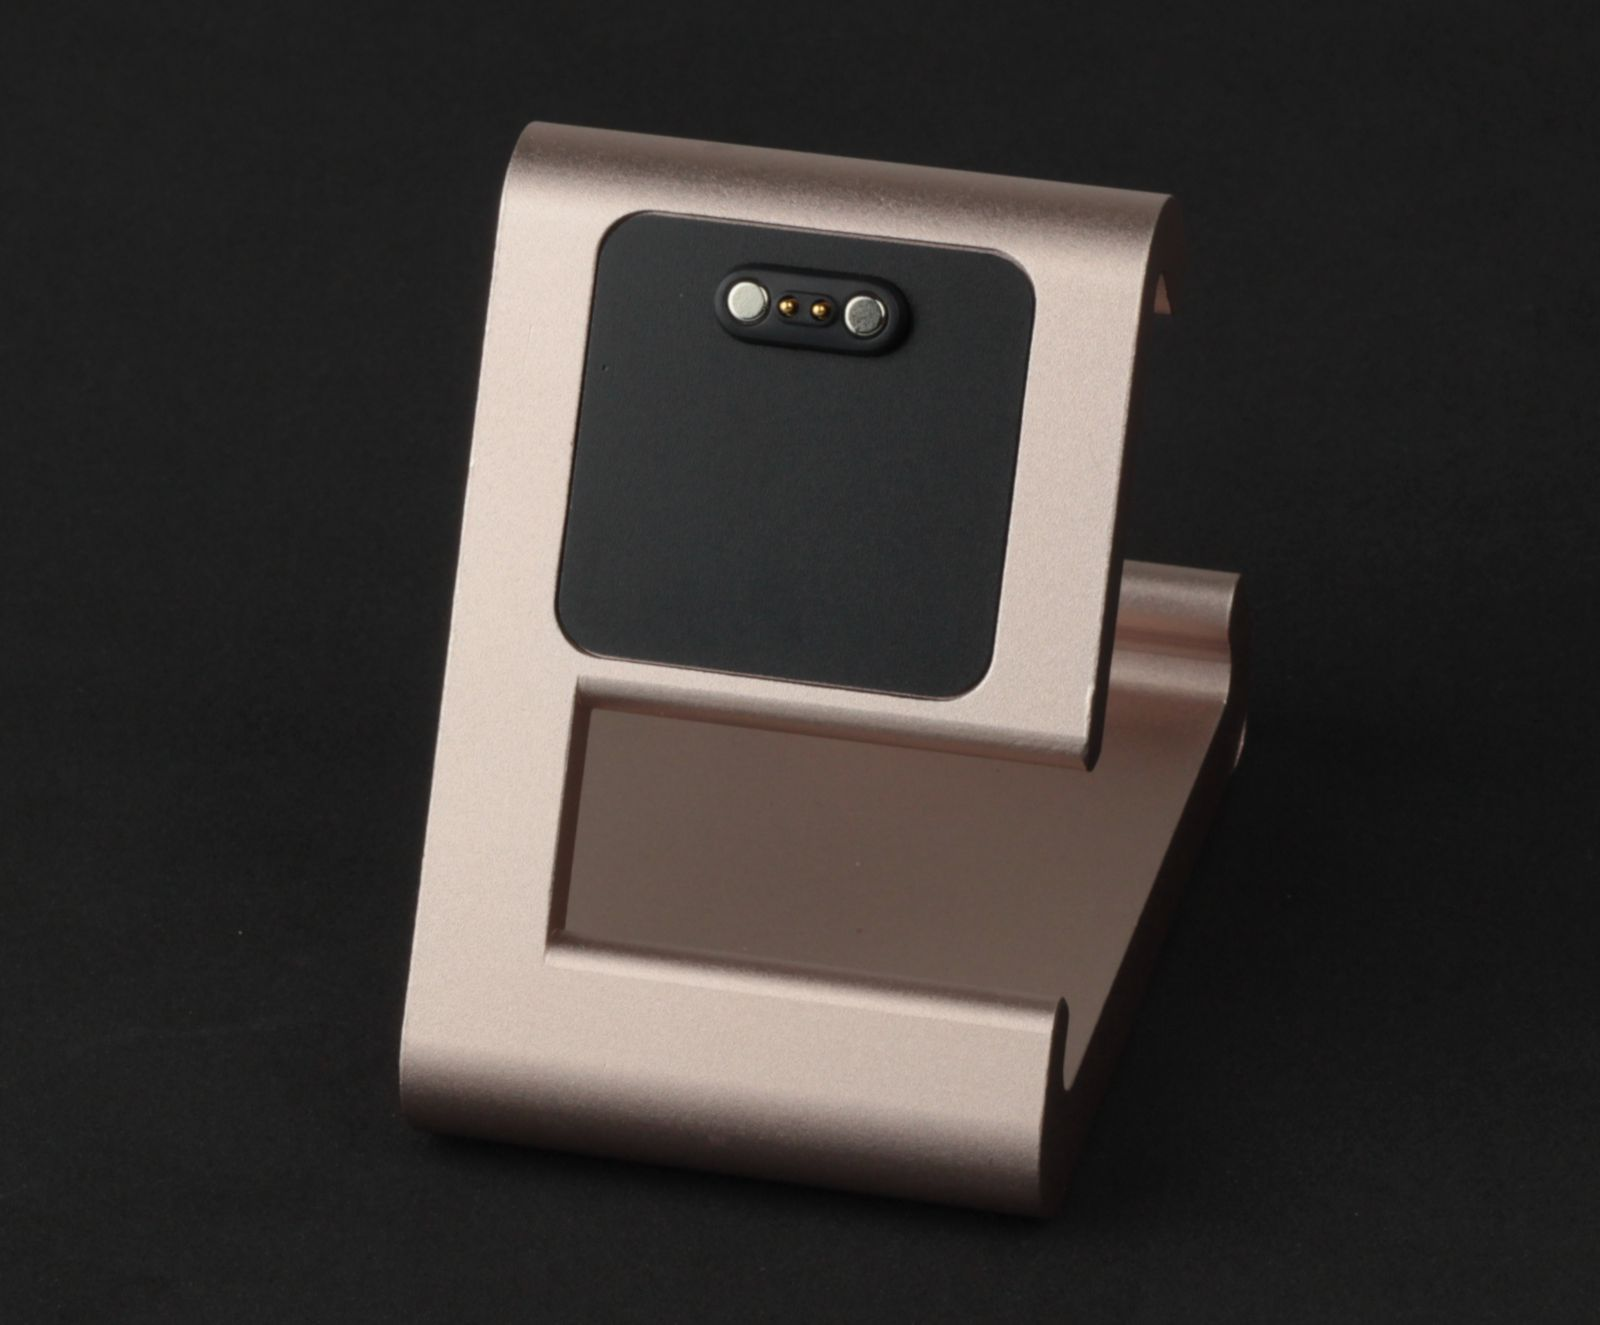 TimeDock Rose Gold for Pebble Time Smartwatch